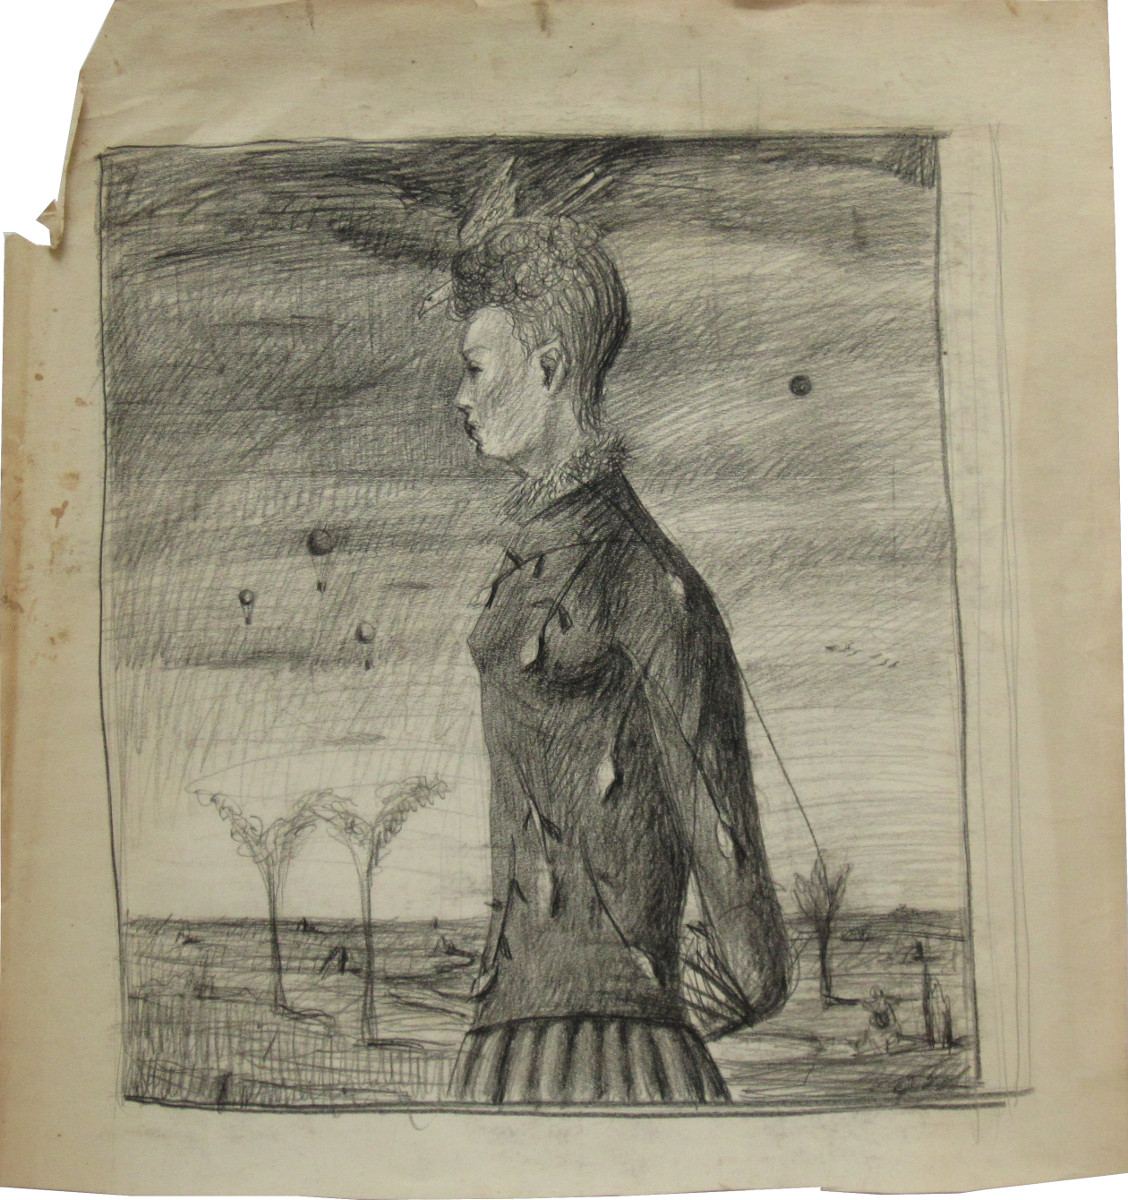 UNTITLED - WOMAN WITH PHEASANT ON HER HEAD, Charcoal on Paper, 19 1/2 x 18""